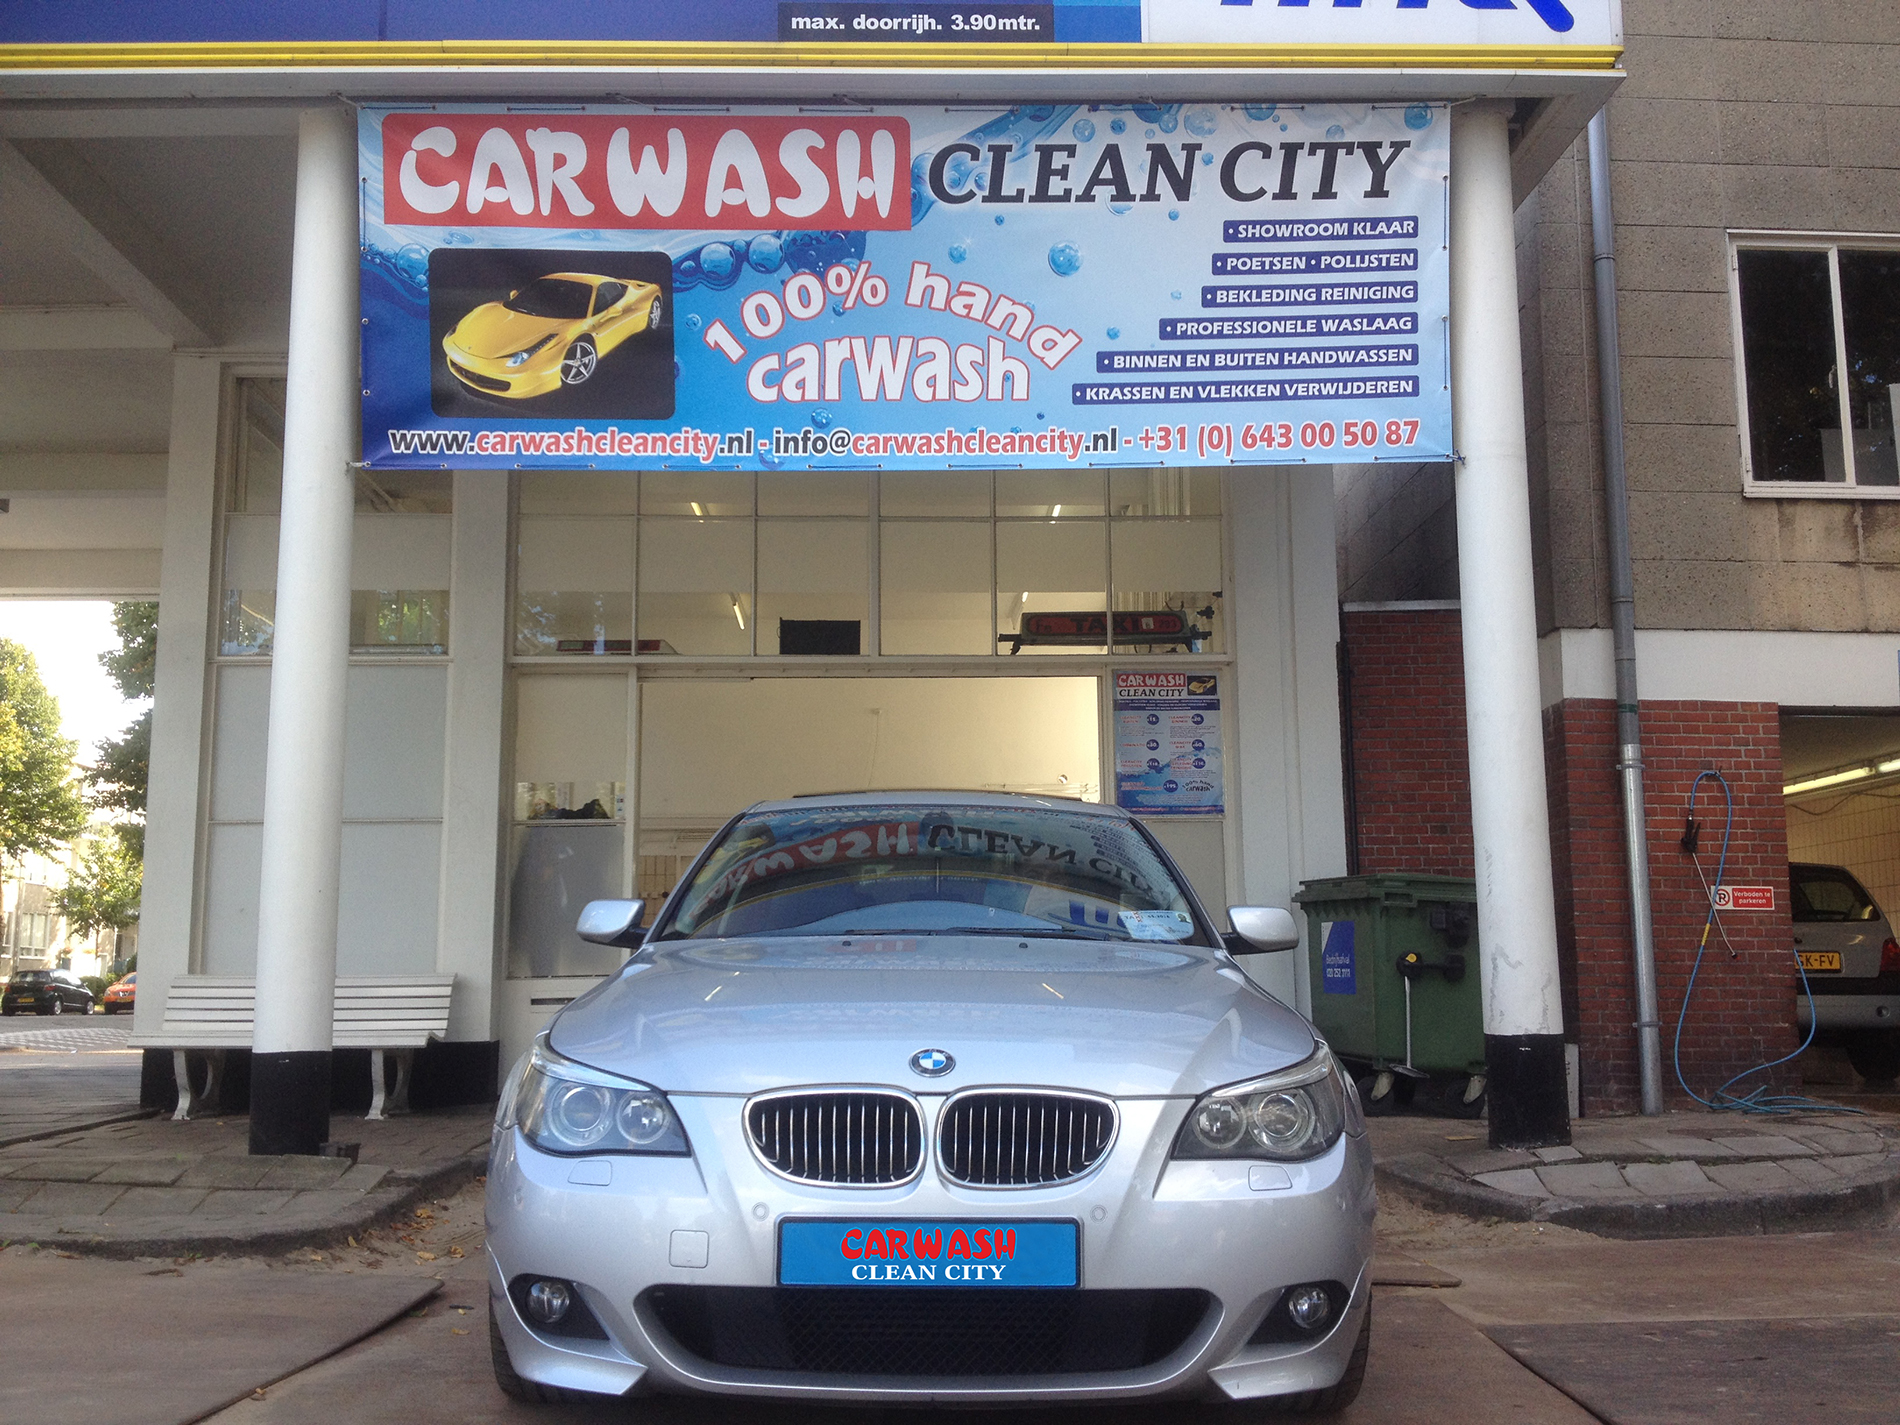 copyright 2012 carwash clean city amsterdam all rights reserved design by multivista